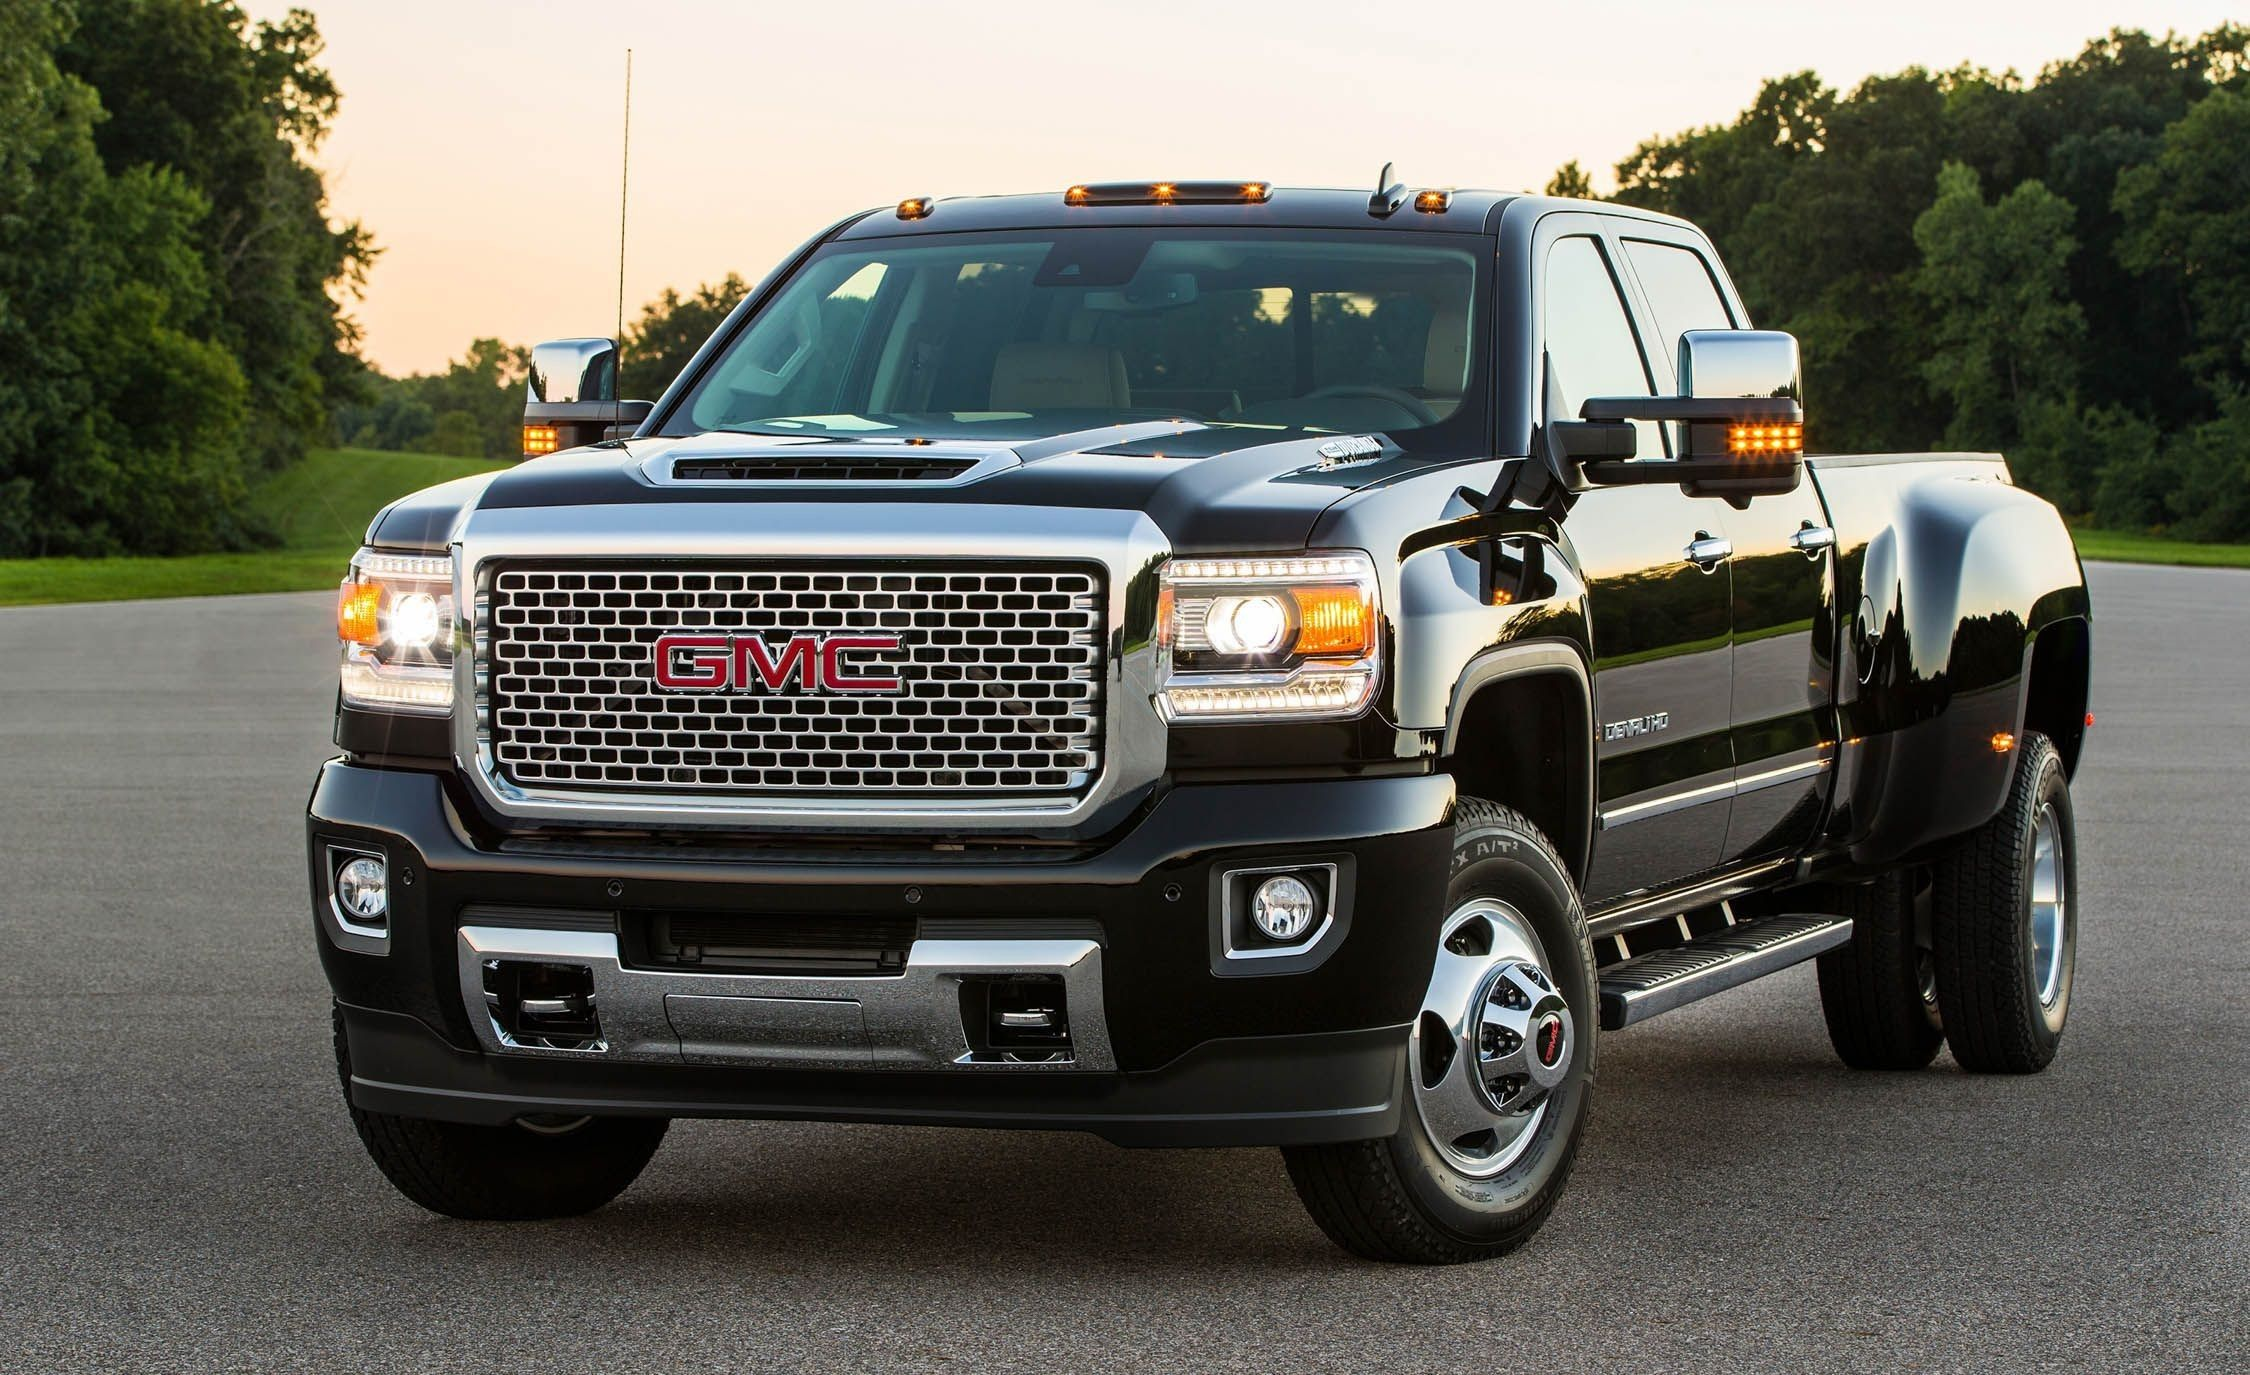 2019 Gmc Sierra 2500hd 3500hd Redesign Price And Review Gmc